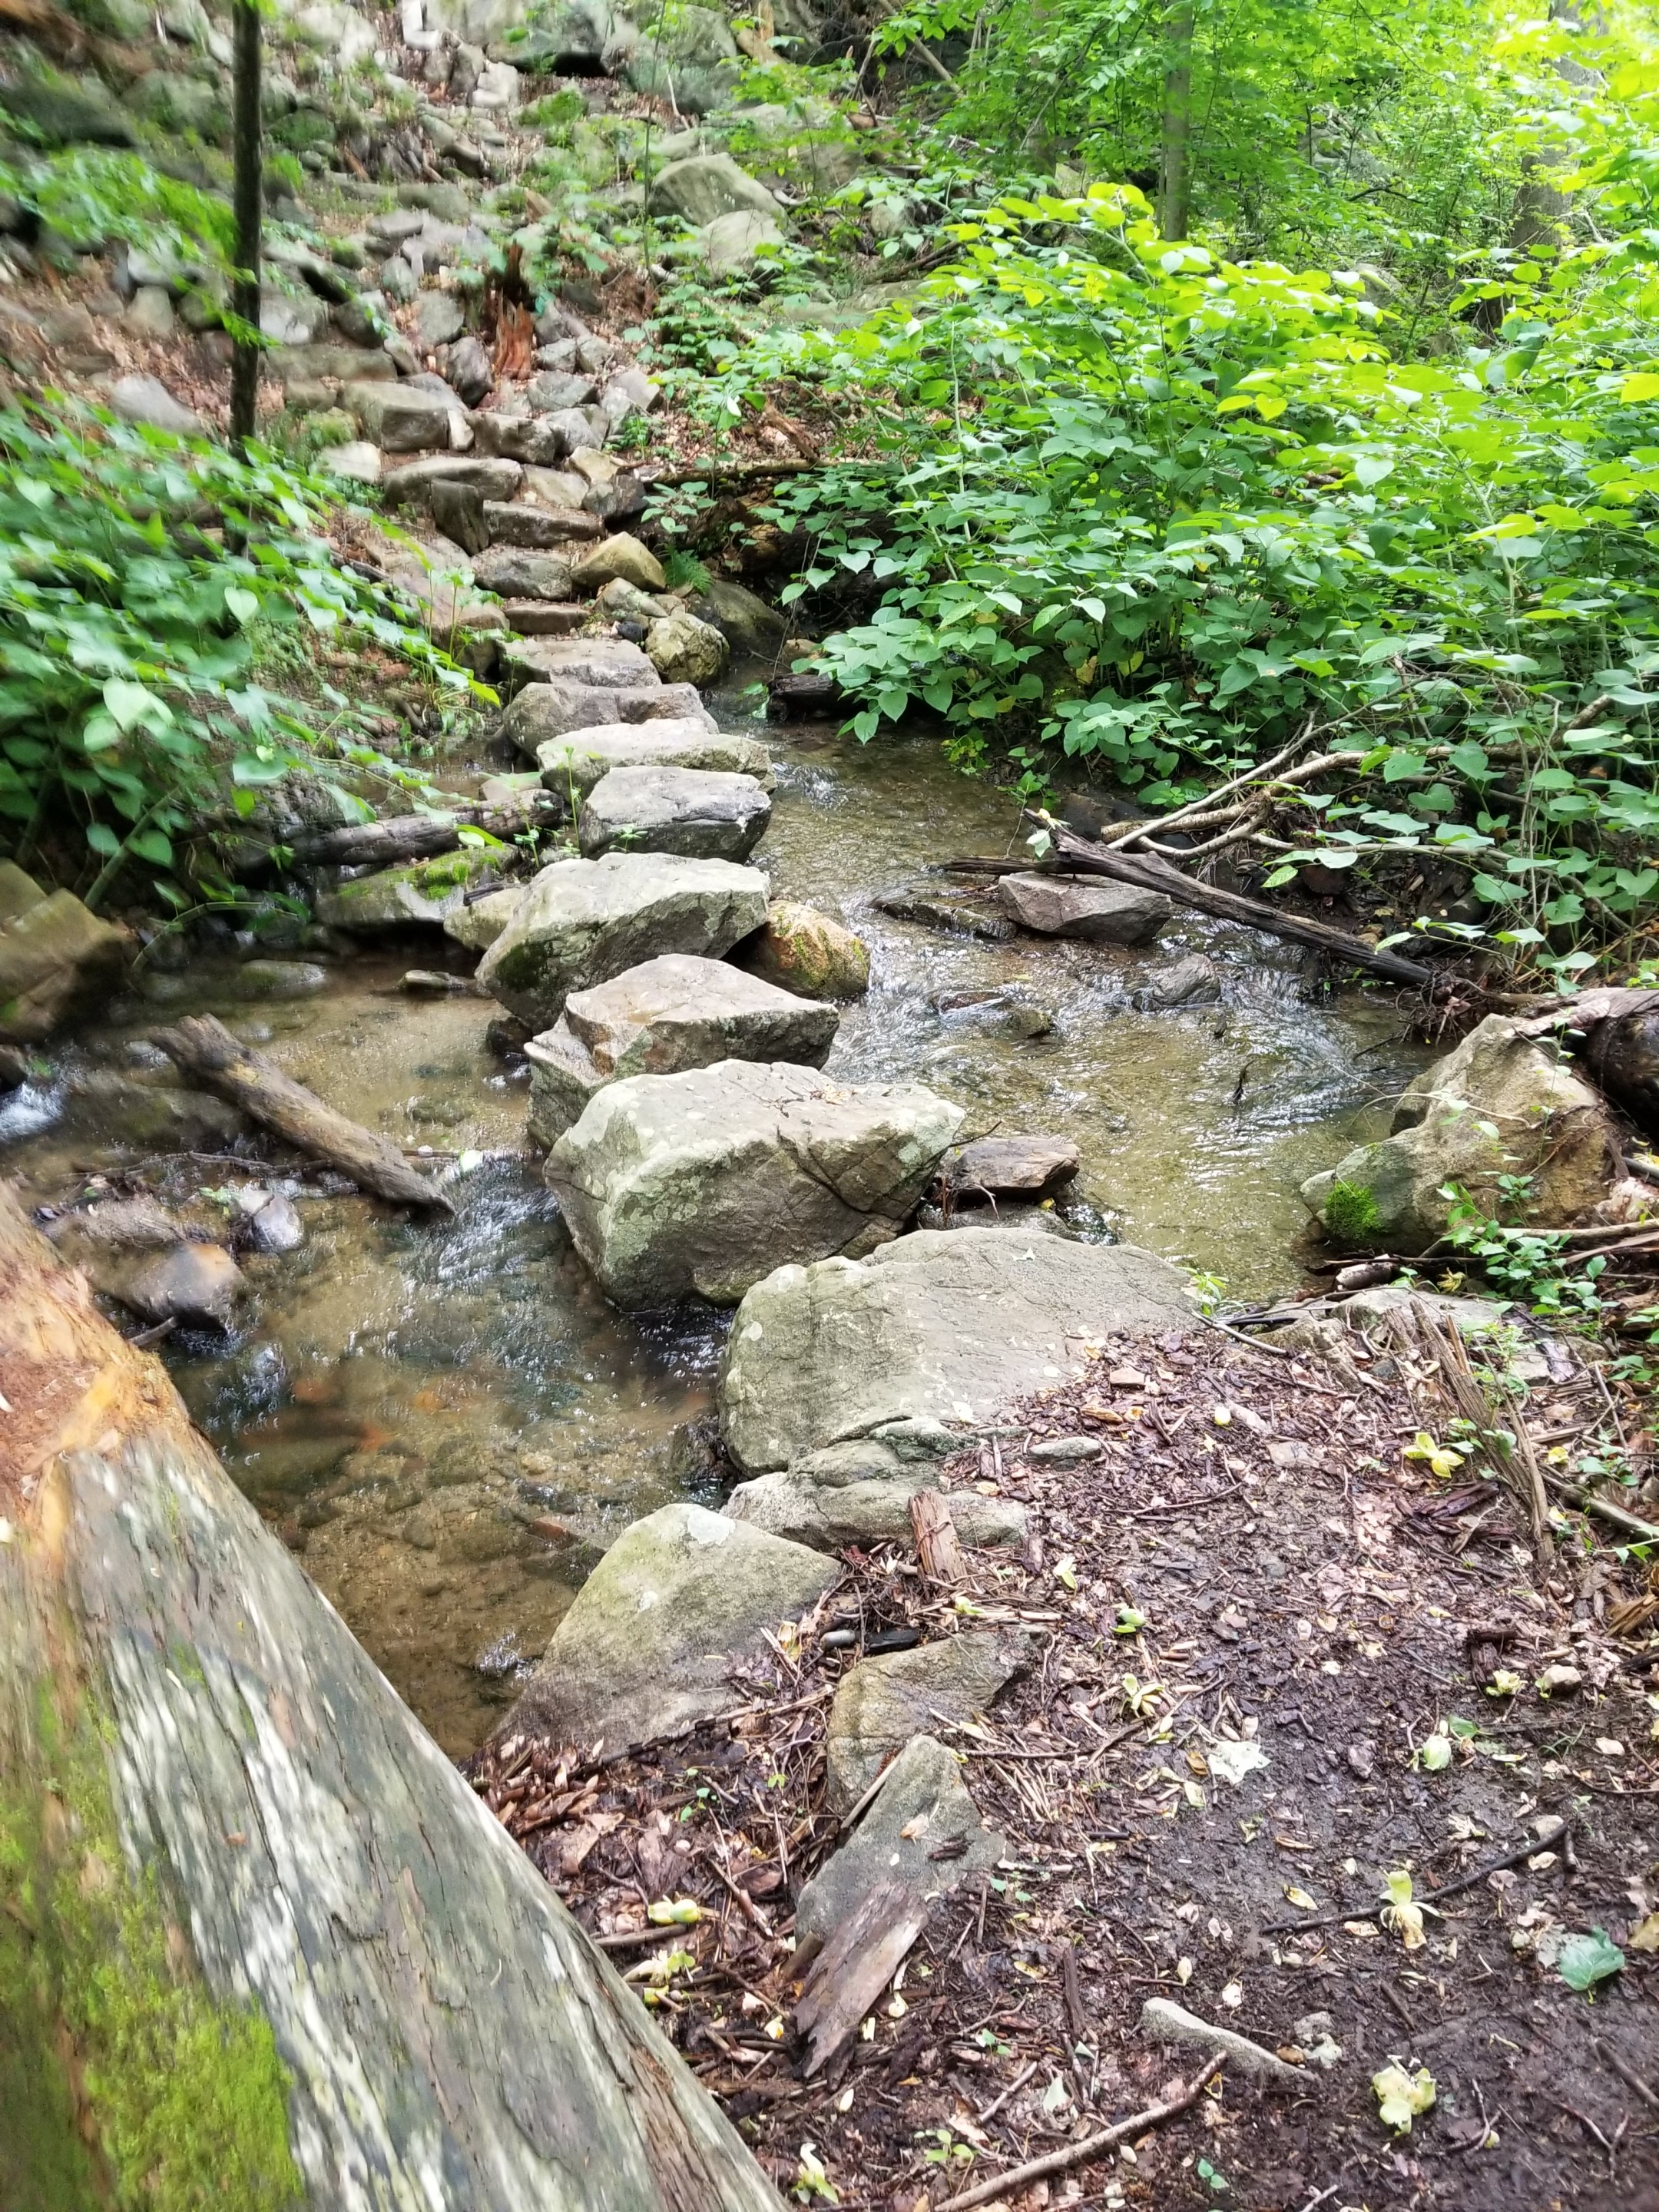 Stream crossing using stepping stones located in the surrounding forest.